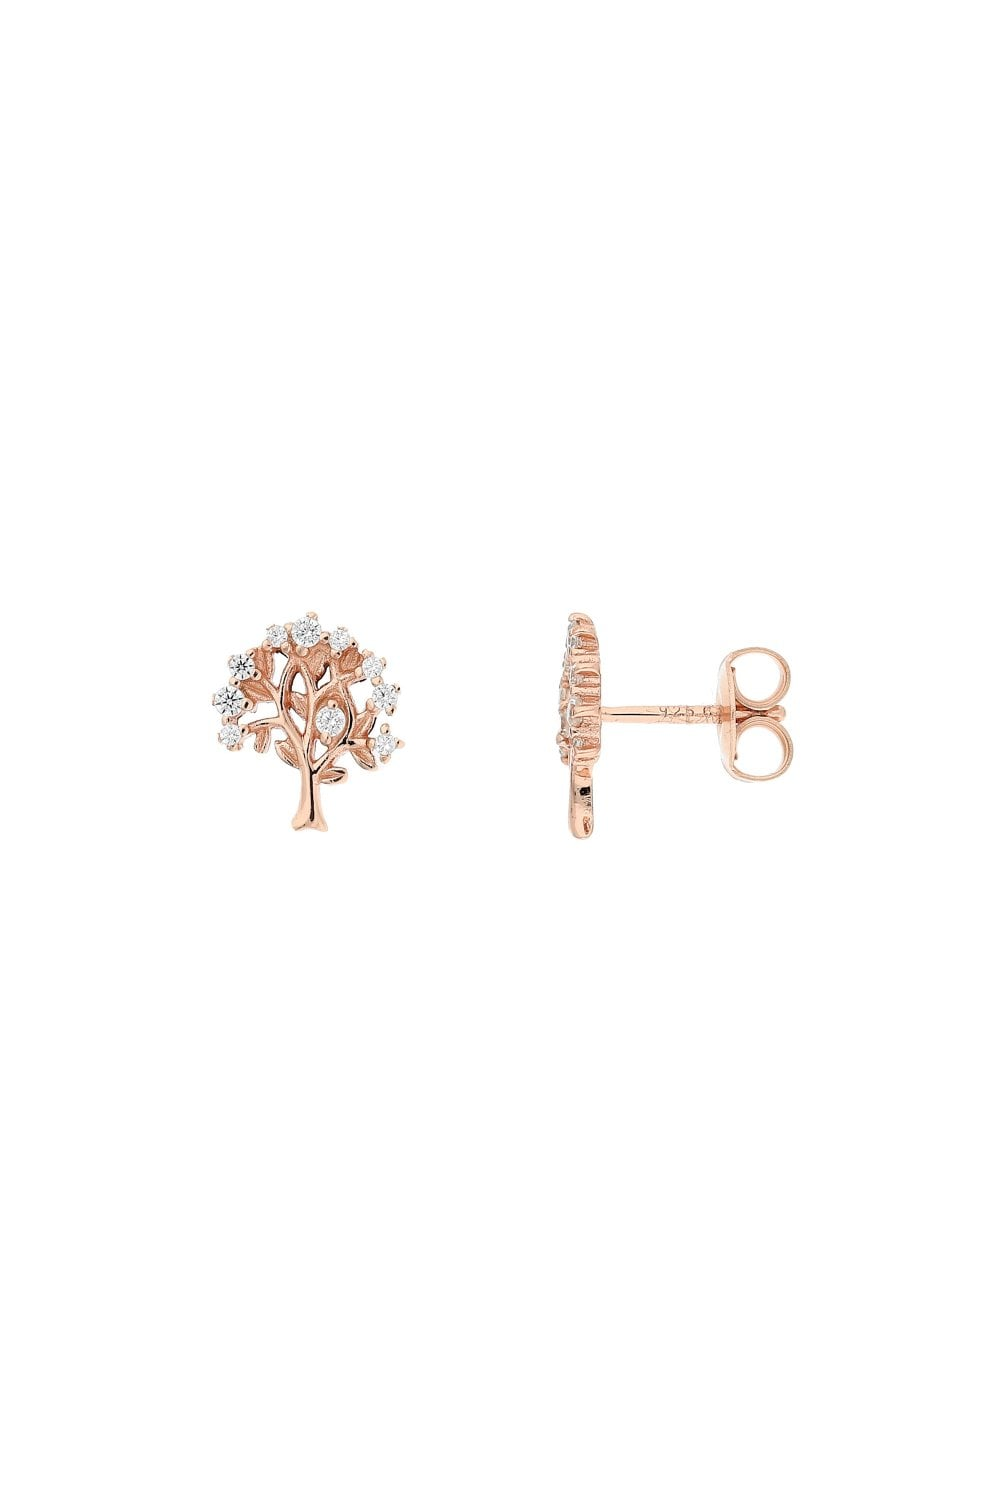 Rose Gold Tree Of Life Stud Earrings Yorkshire Jewellery Company